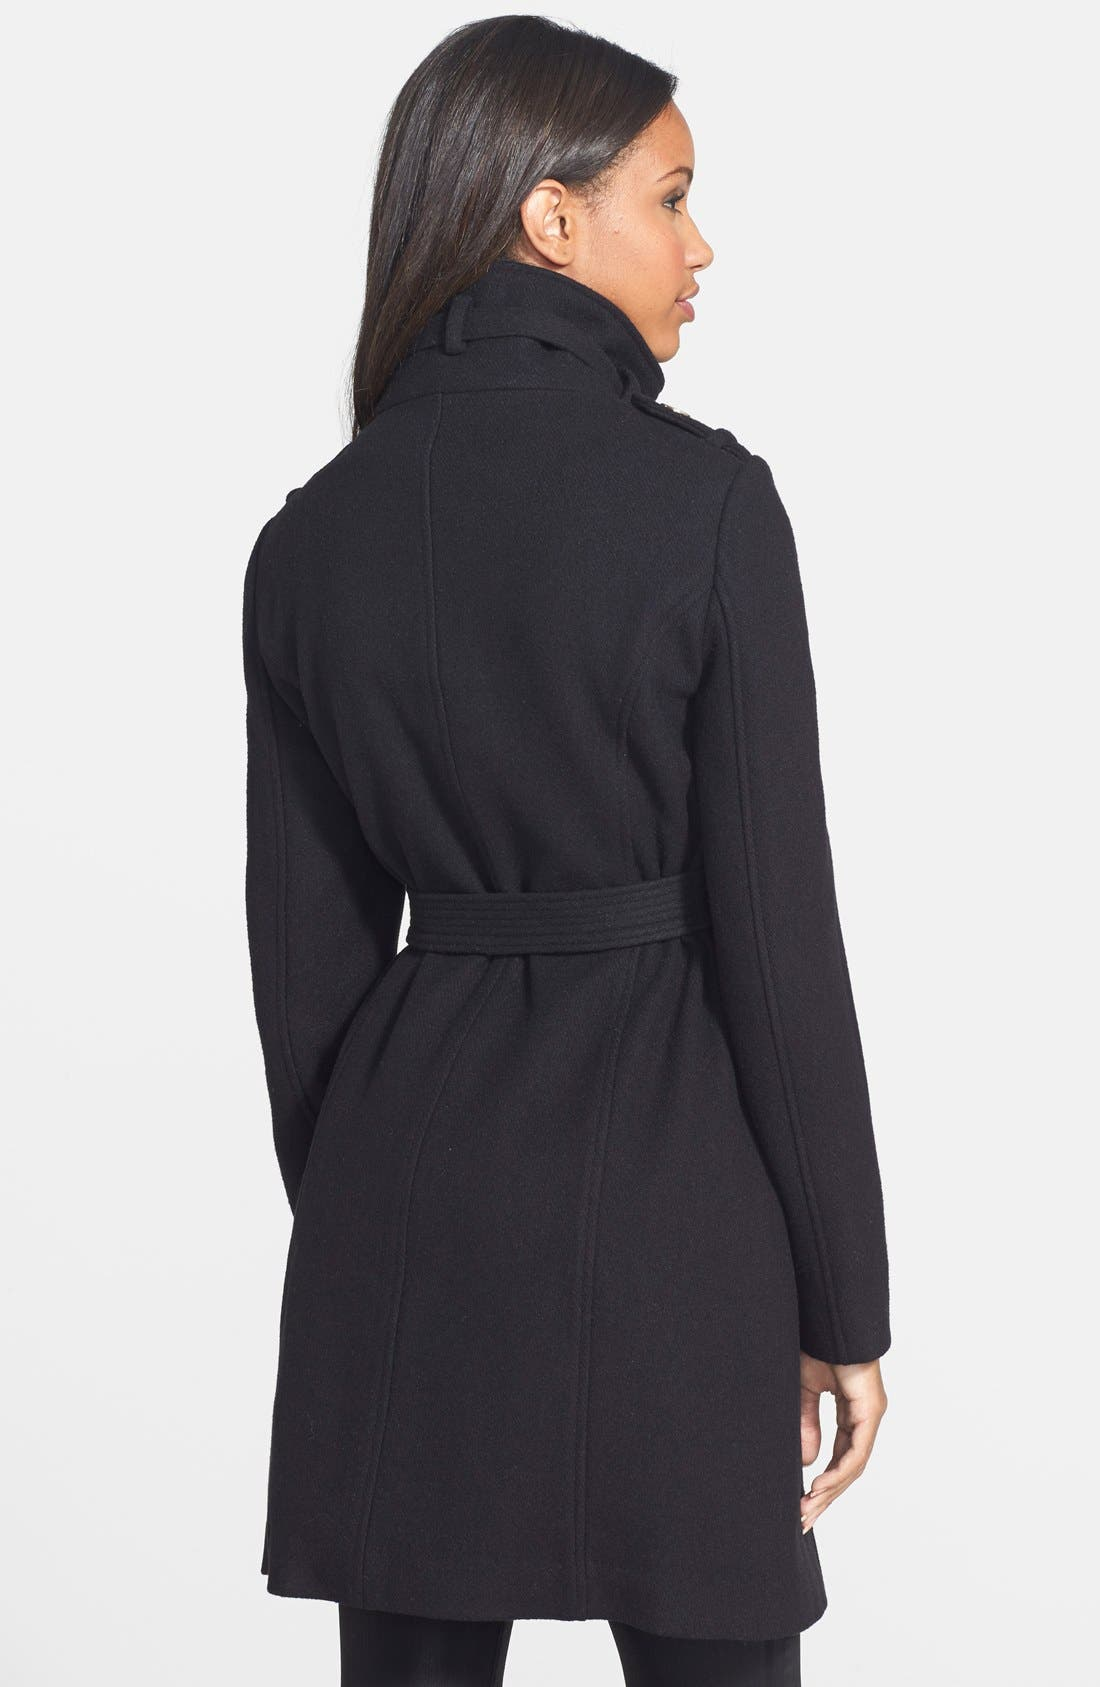 Stand Collar Wool Blend Trench Coat,                             Alternate thumbnail 4, color,                             001